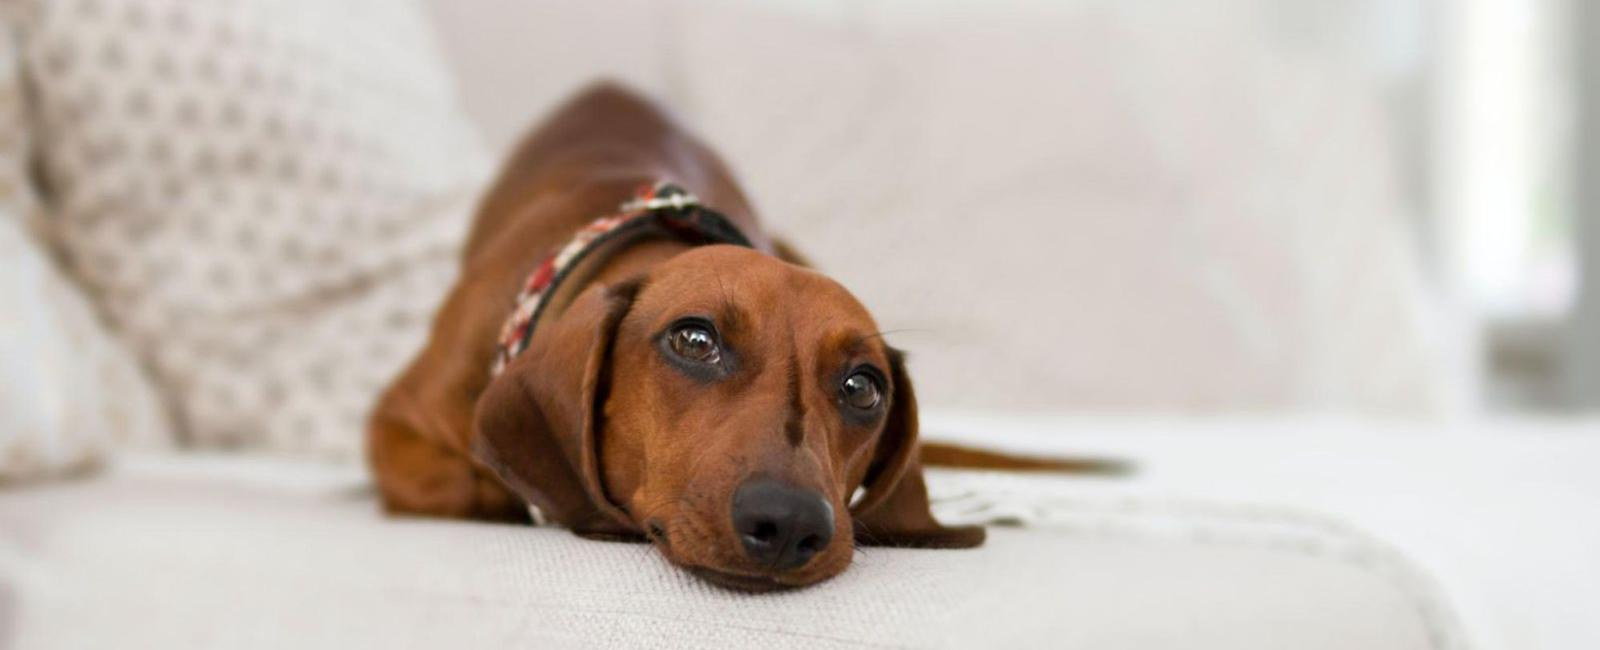 Your Dog Doesn't Bark? Here's Why